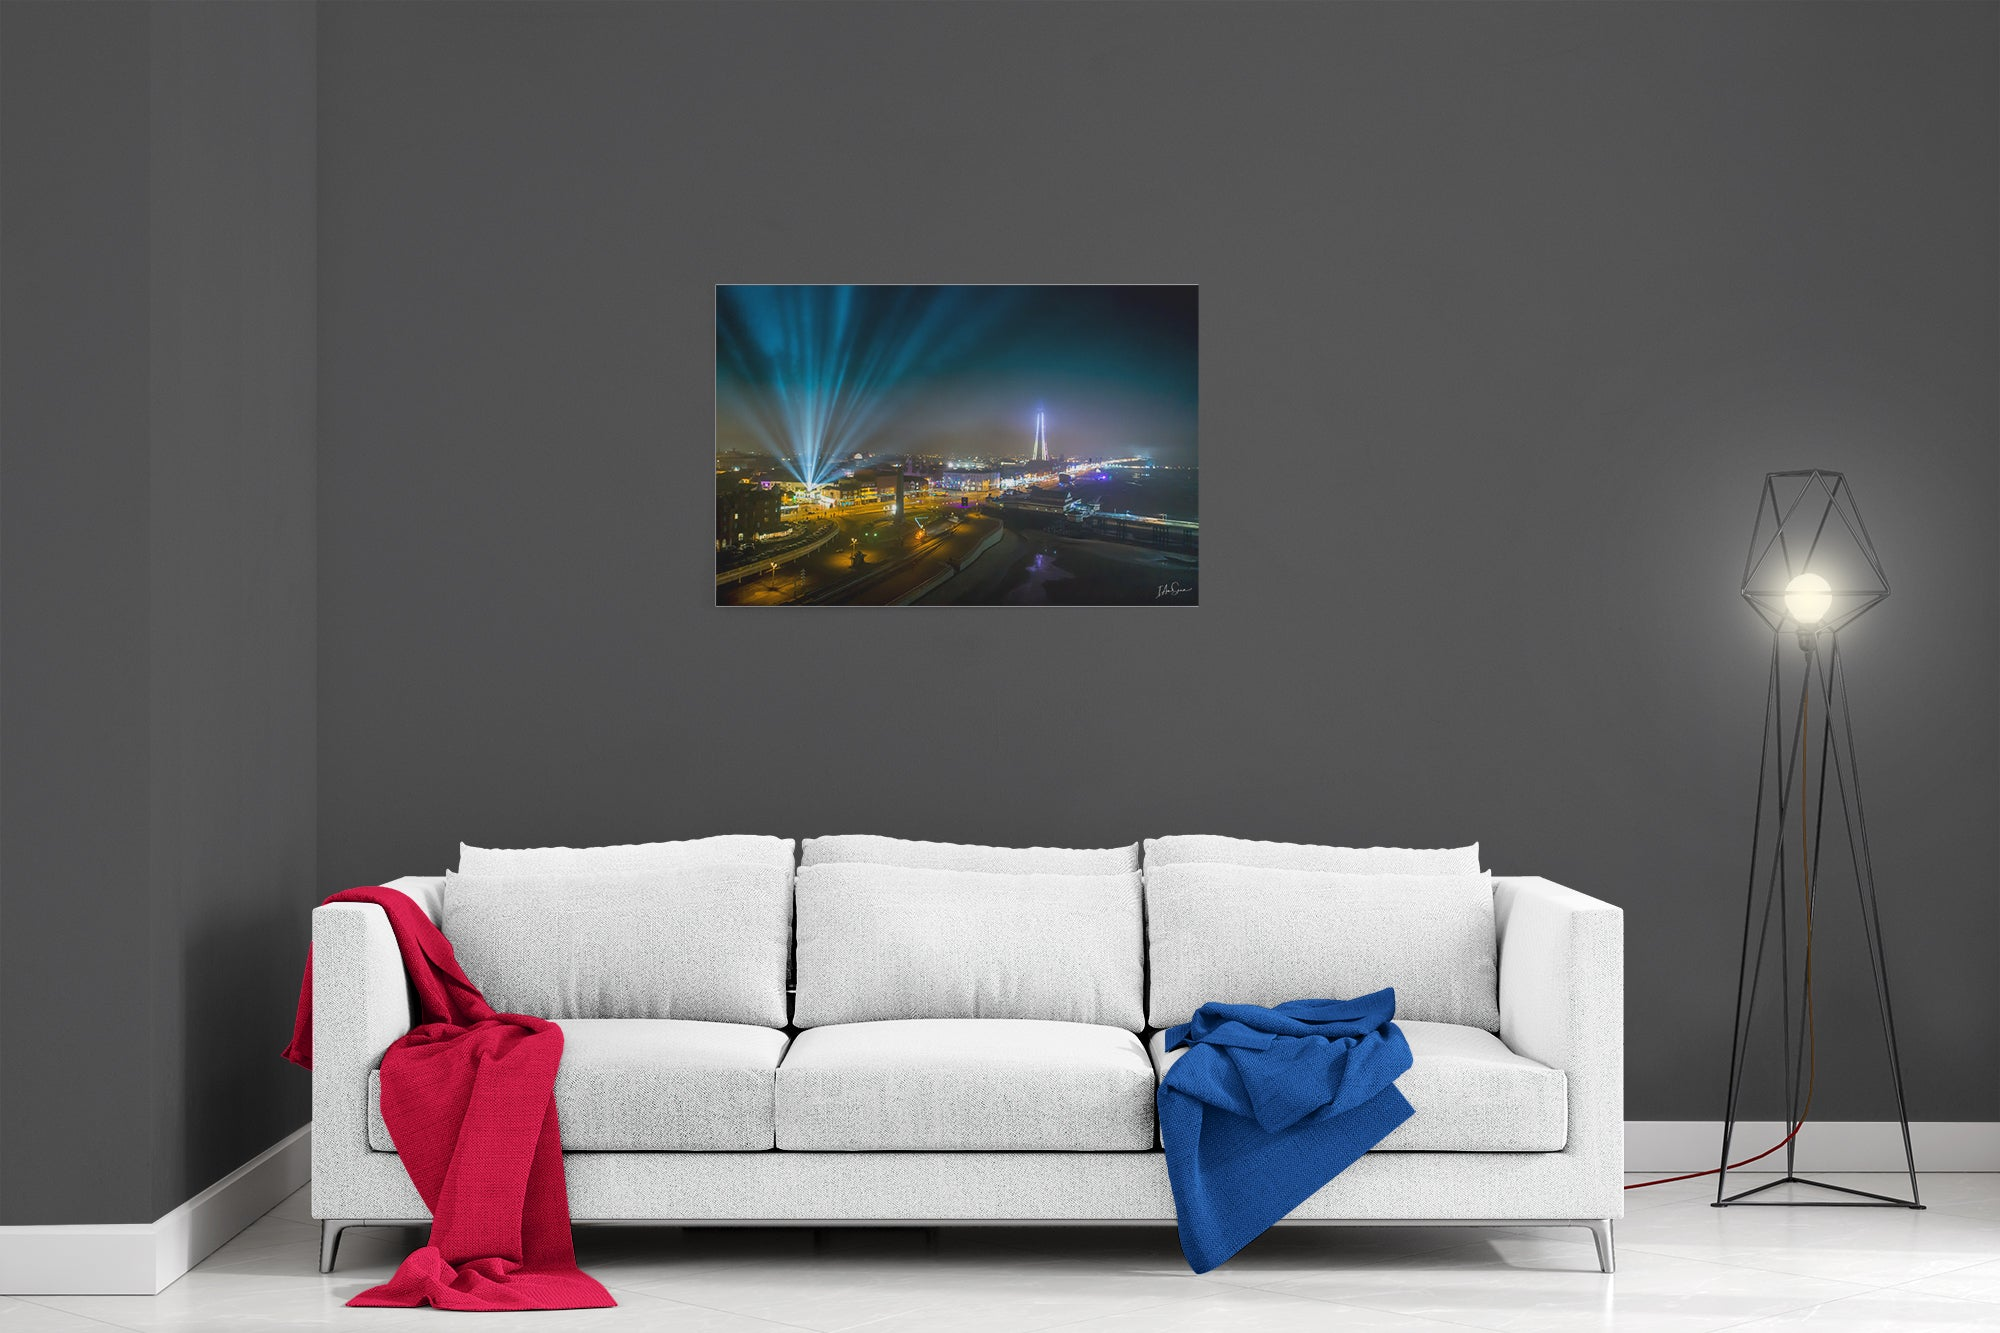 Light Up The Sky - Poster Print